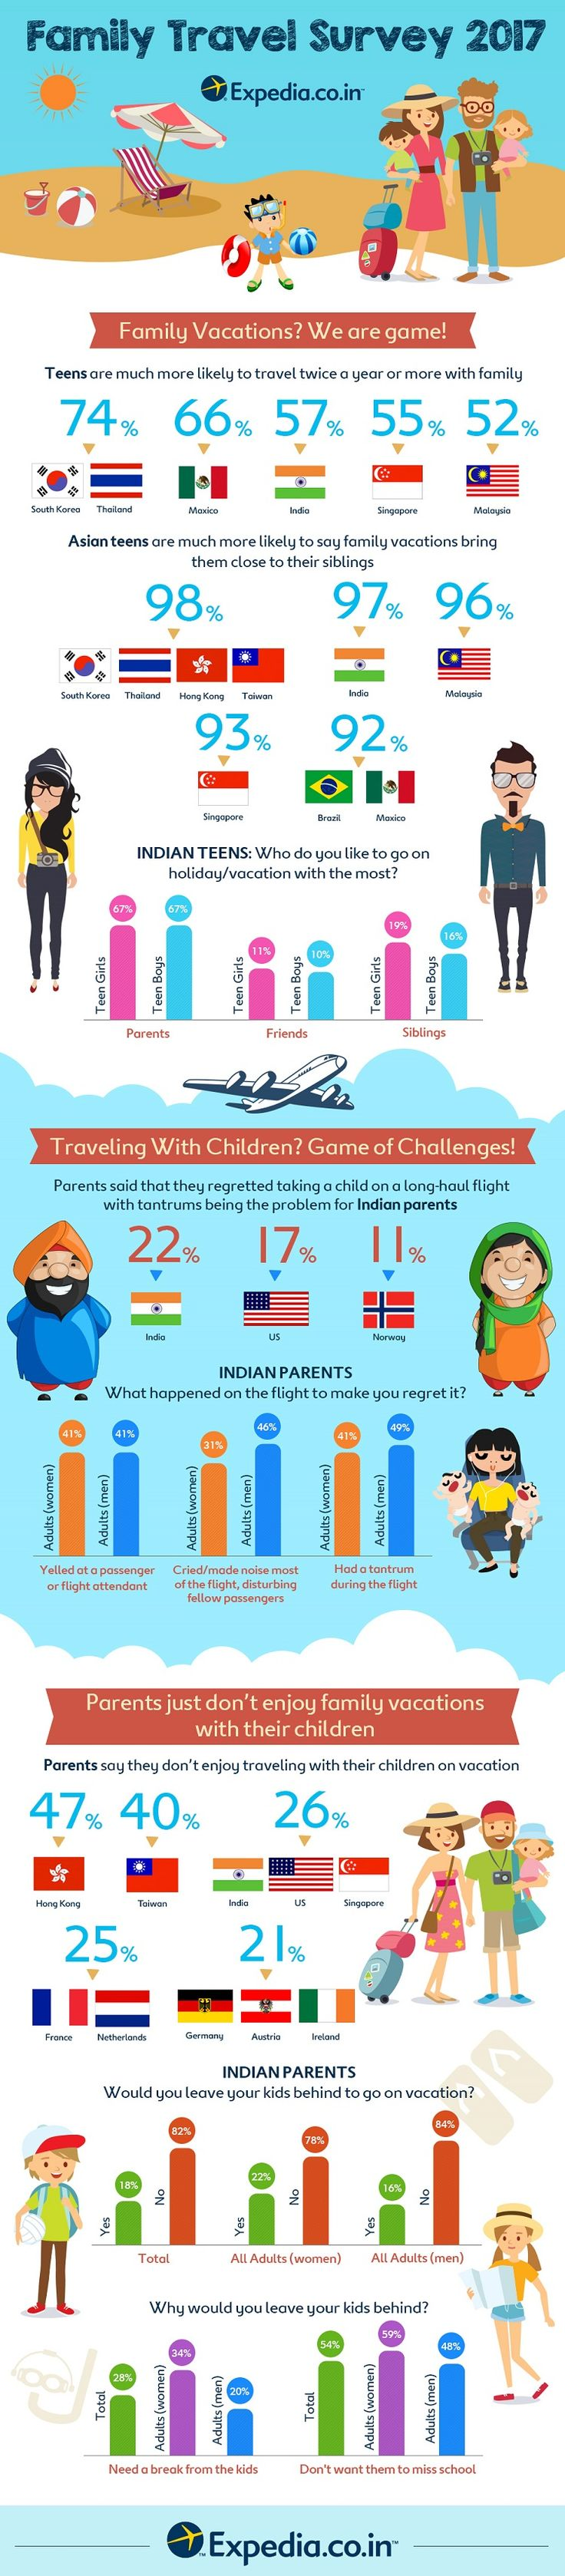 #expedia Family Travel Survey 2017: Indian Parents Let Go of their Parenting Style When on #Vacation